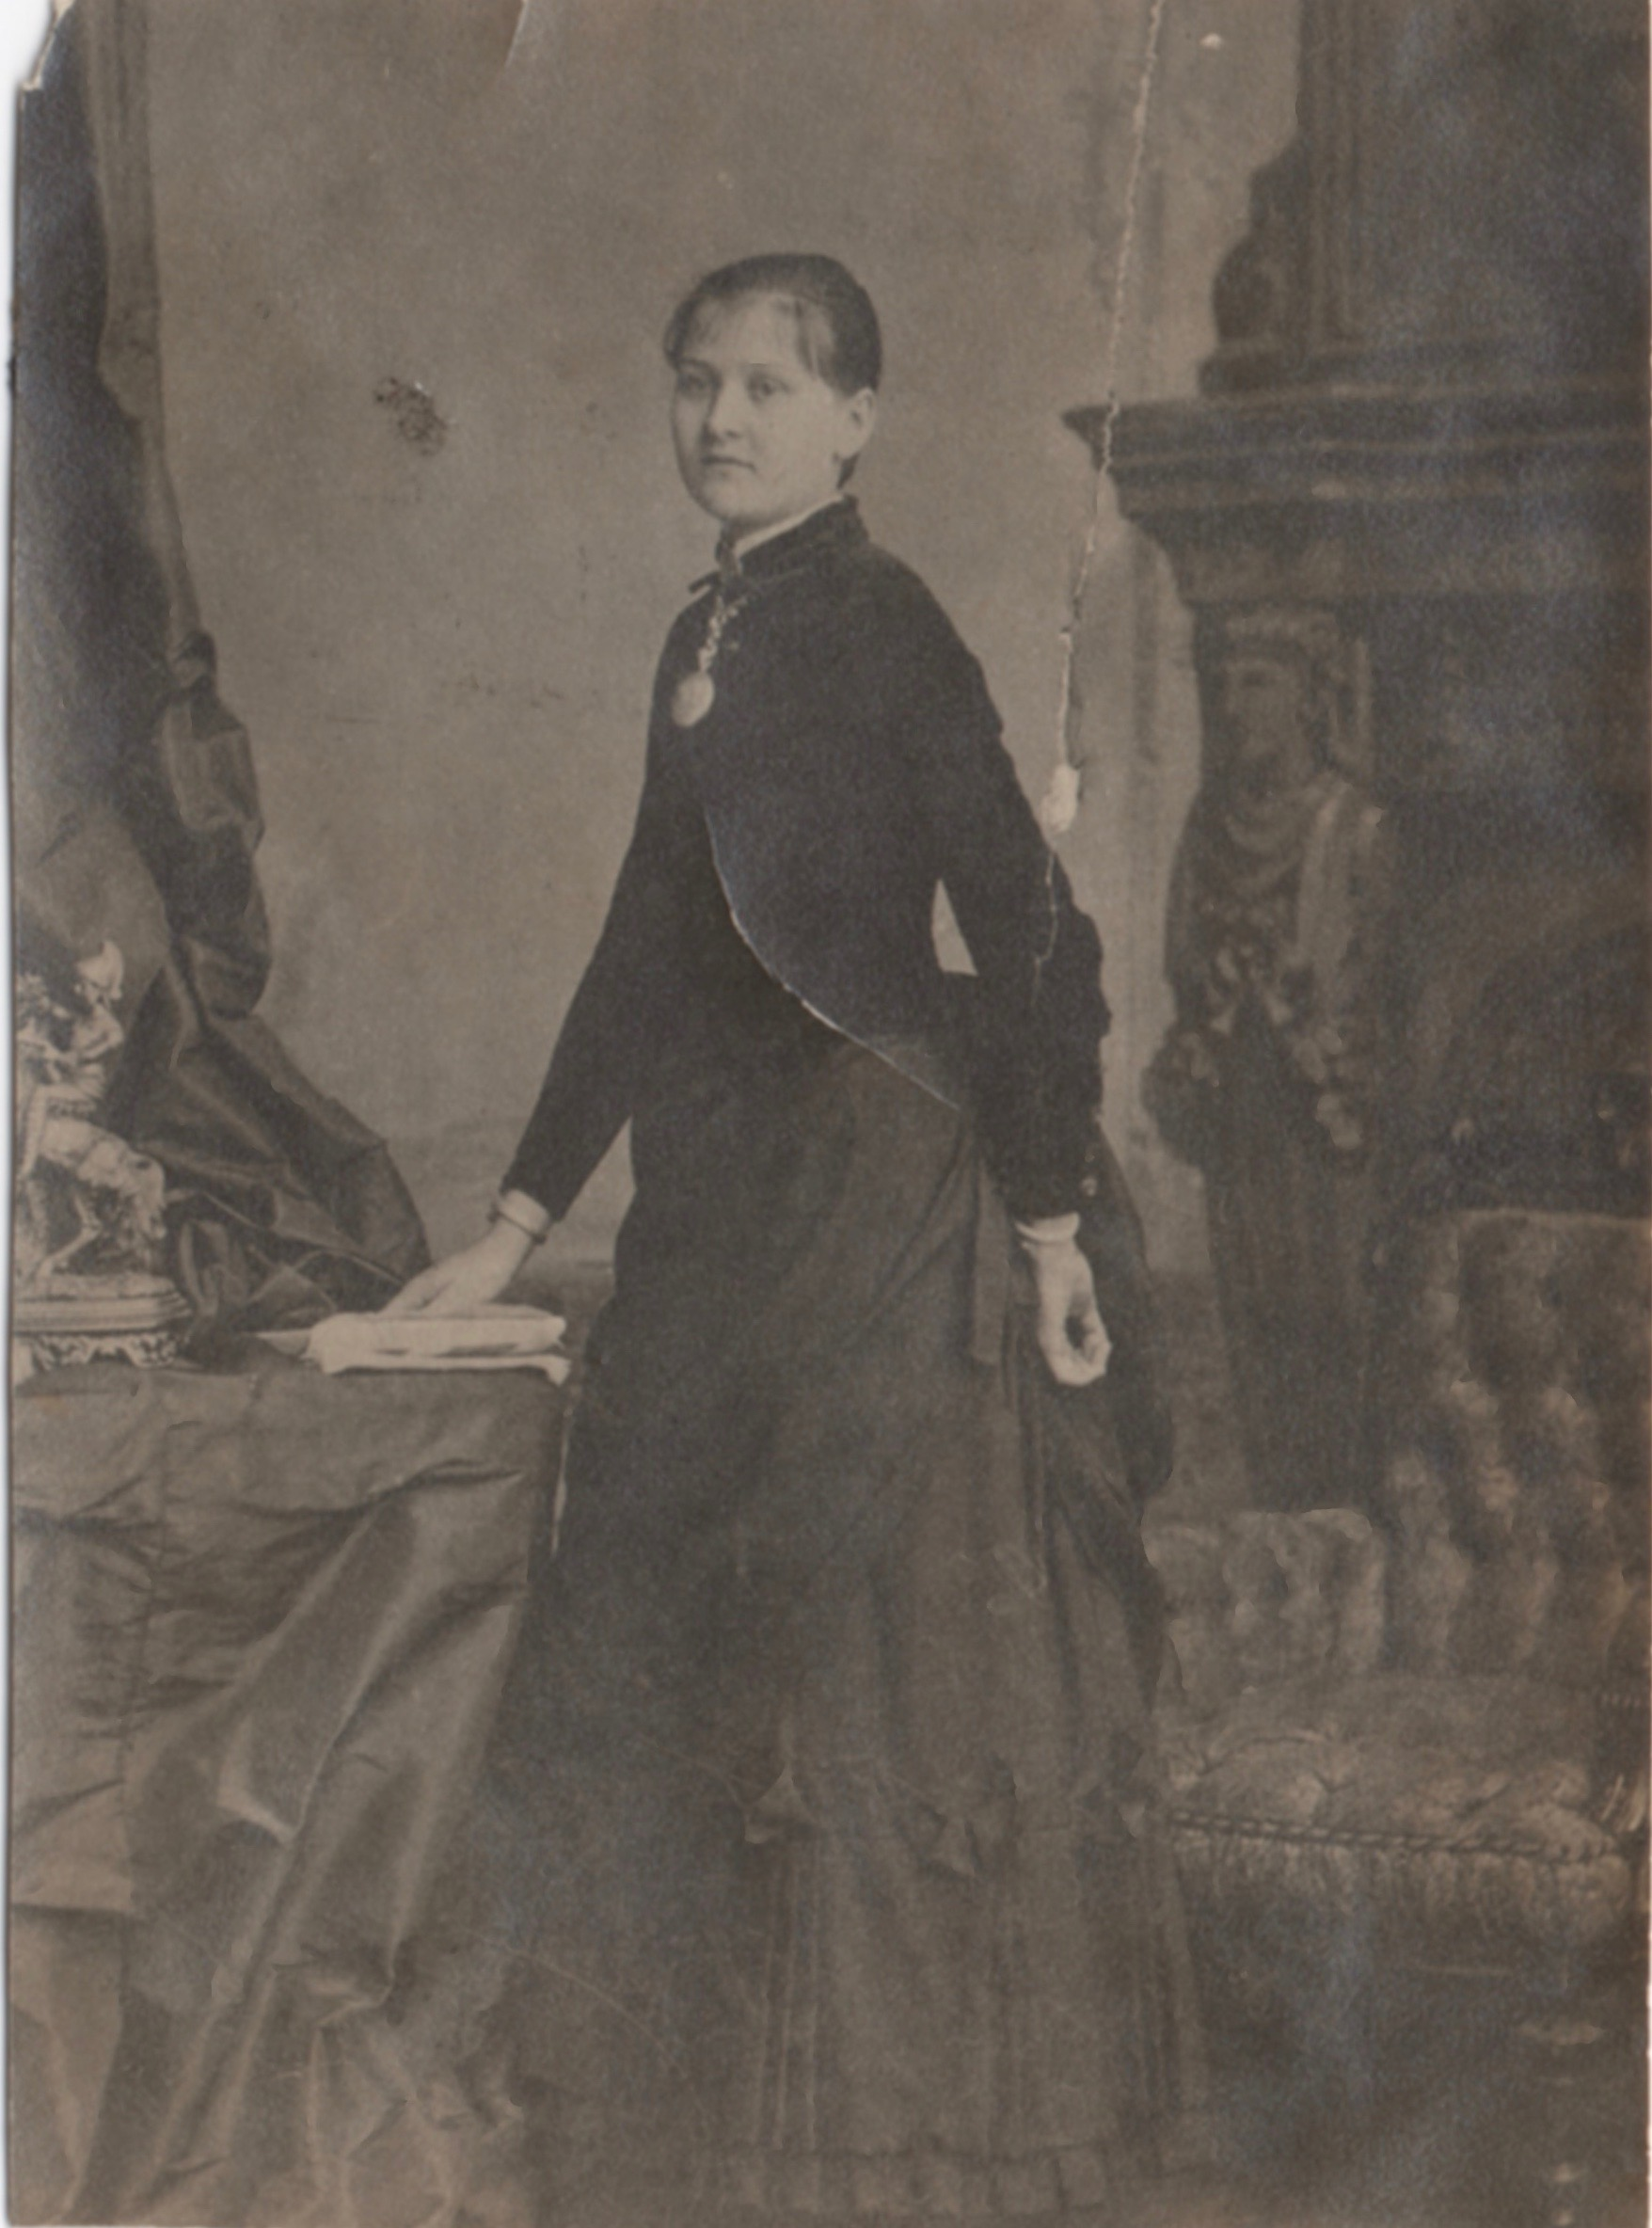 Margaret Deniston Young Starrett, in a studio portrait likely taken around the time of her marriage. The photo is from a family album and is undated.